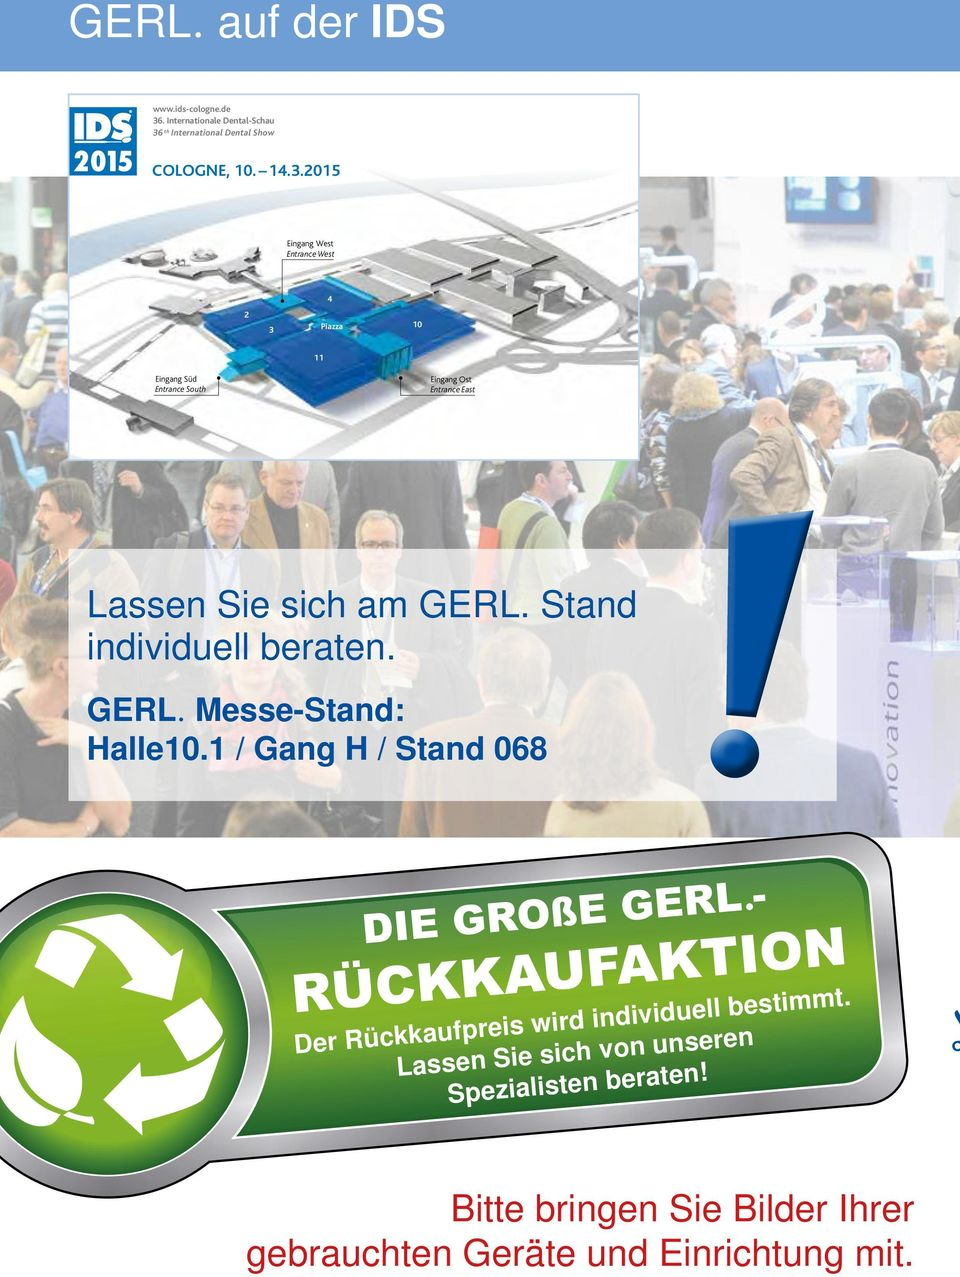 th International Dental Show COLOGNE, 10. 14.3.